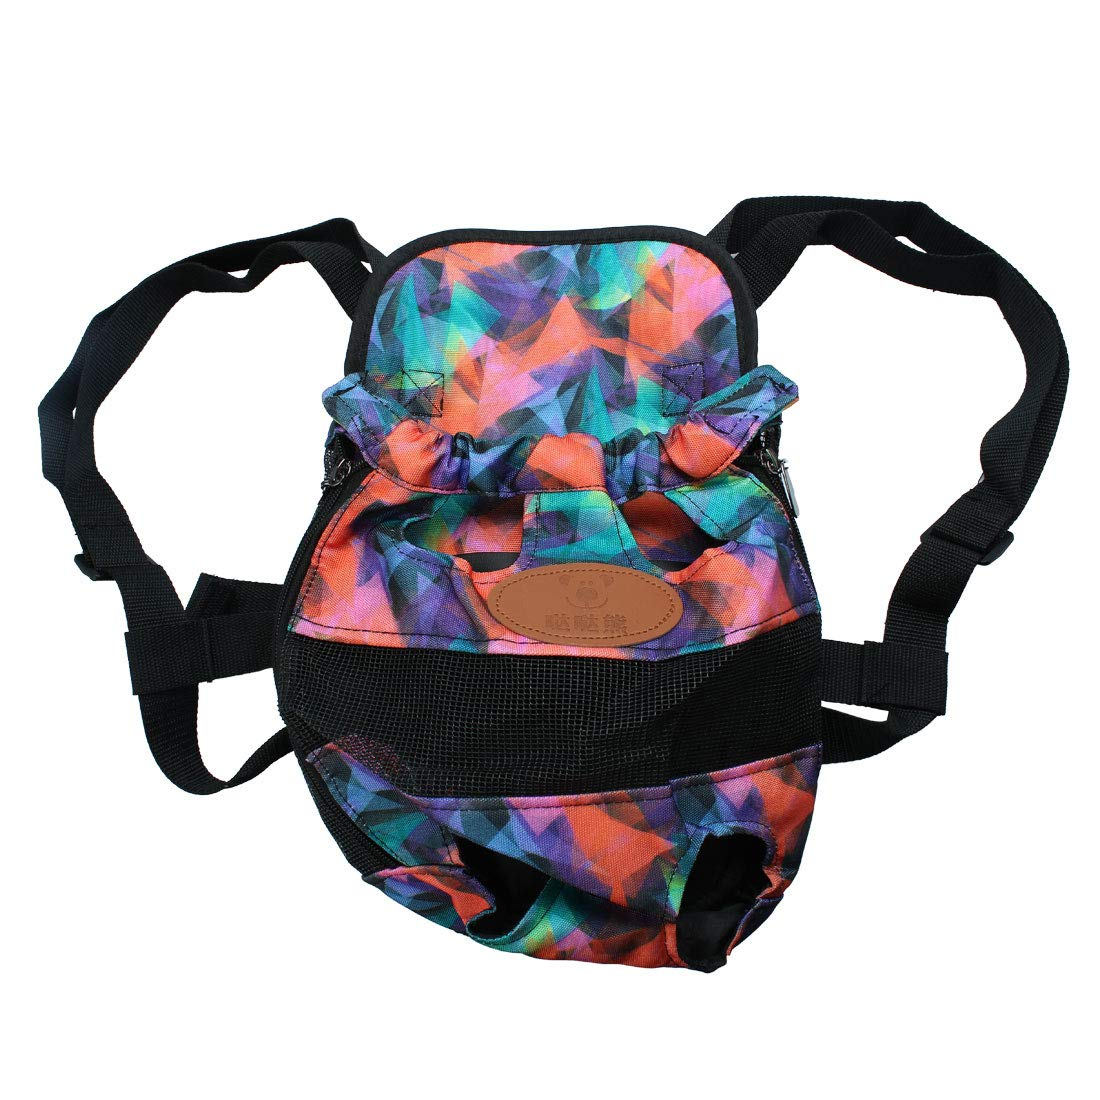 colorful Pattern S colorful Pattern S uxcell® Pet Dog Carrier Adjustable Front Chest Backpack Pet Cat Puppy Tote Holder Bag Straps for Travel Outdoor S Size colorful Pattern